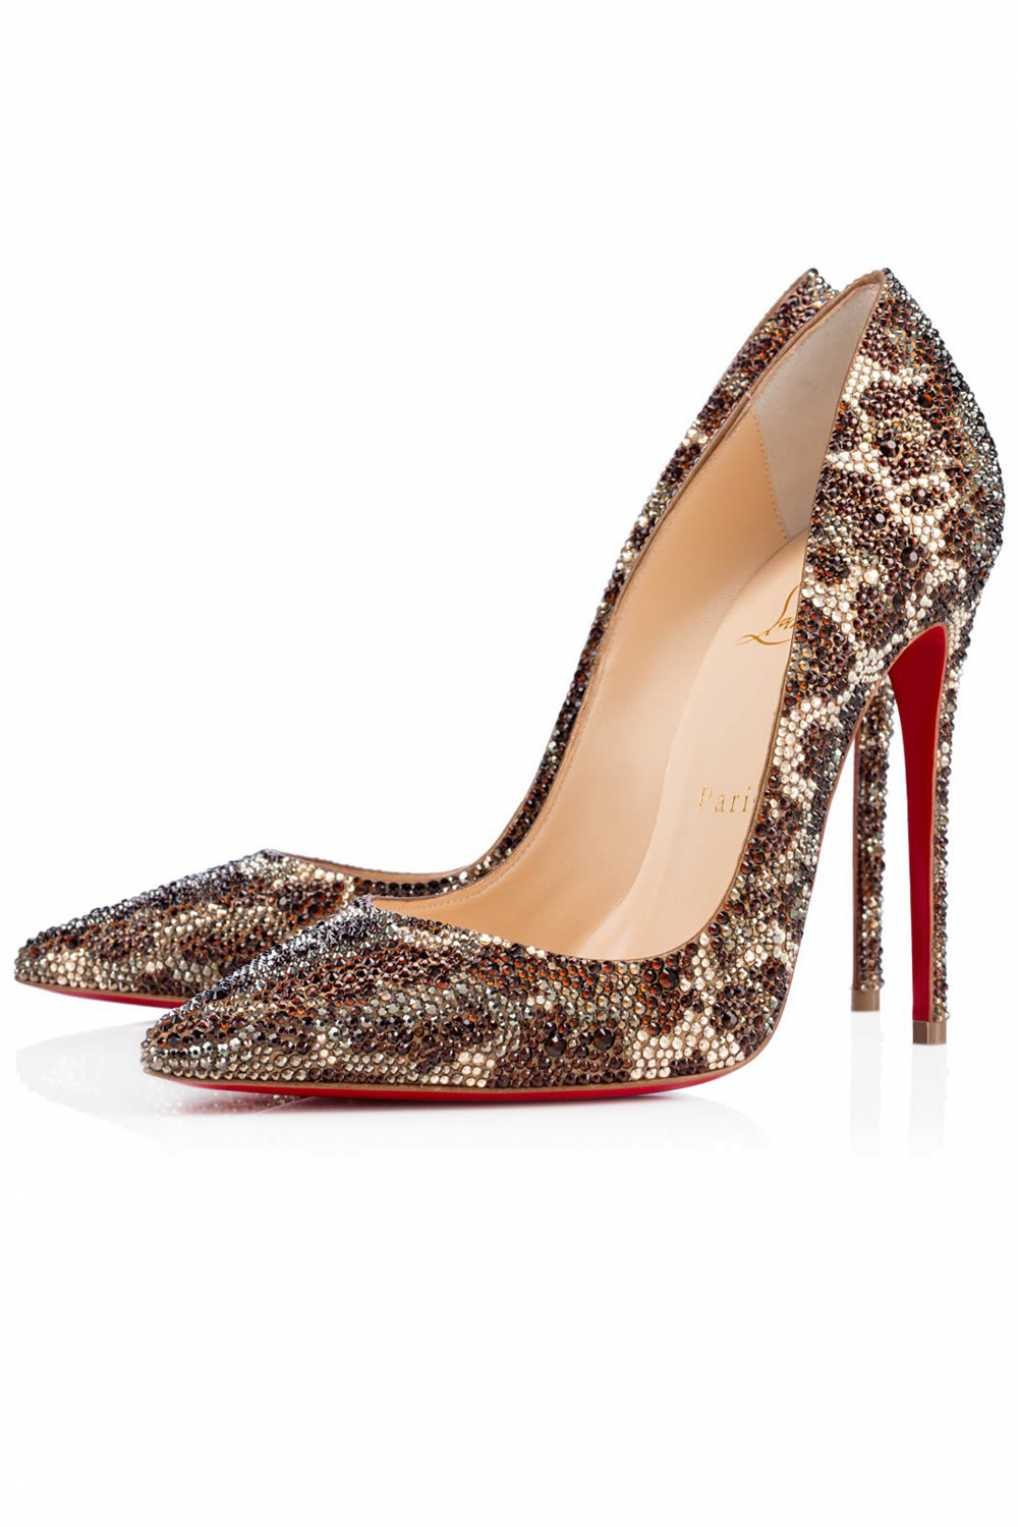 Christian Louboutin 00008 So Kate Strass Red Sole Pump